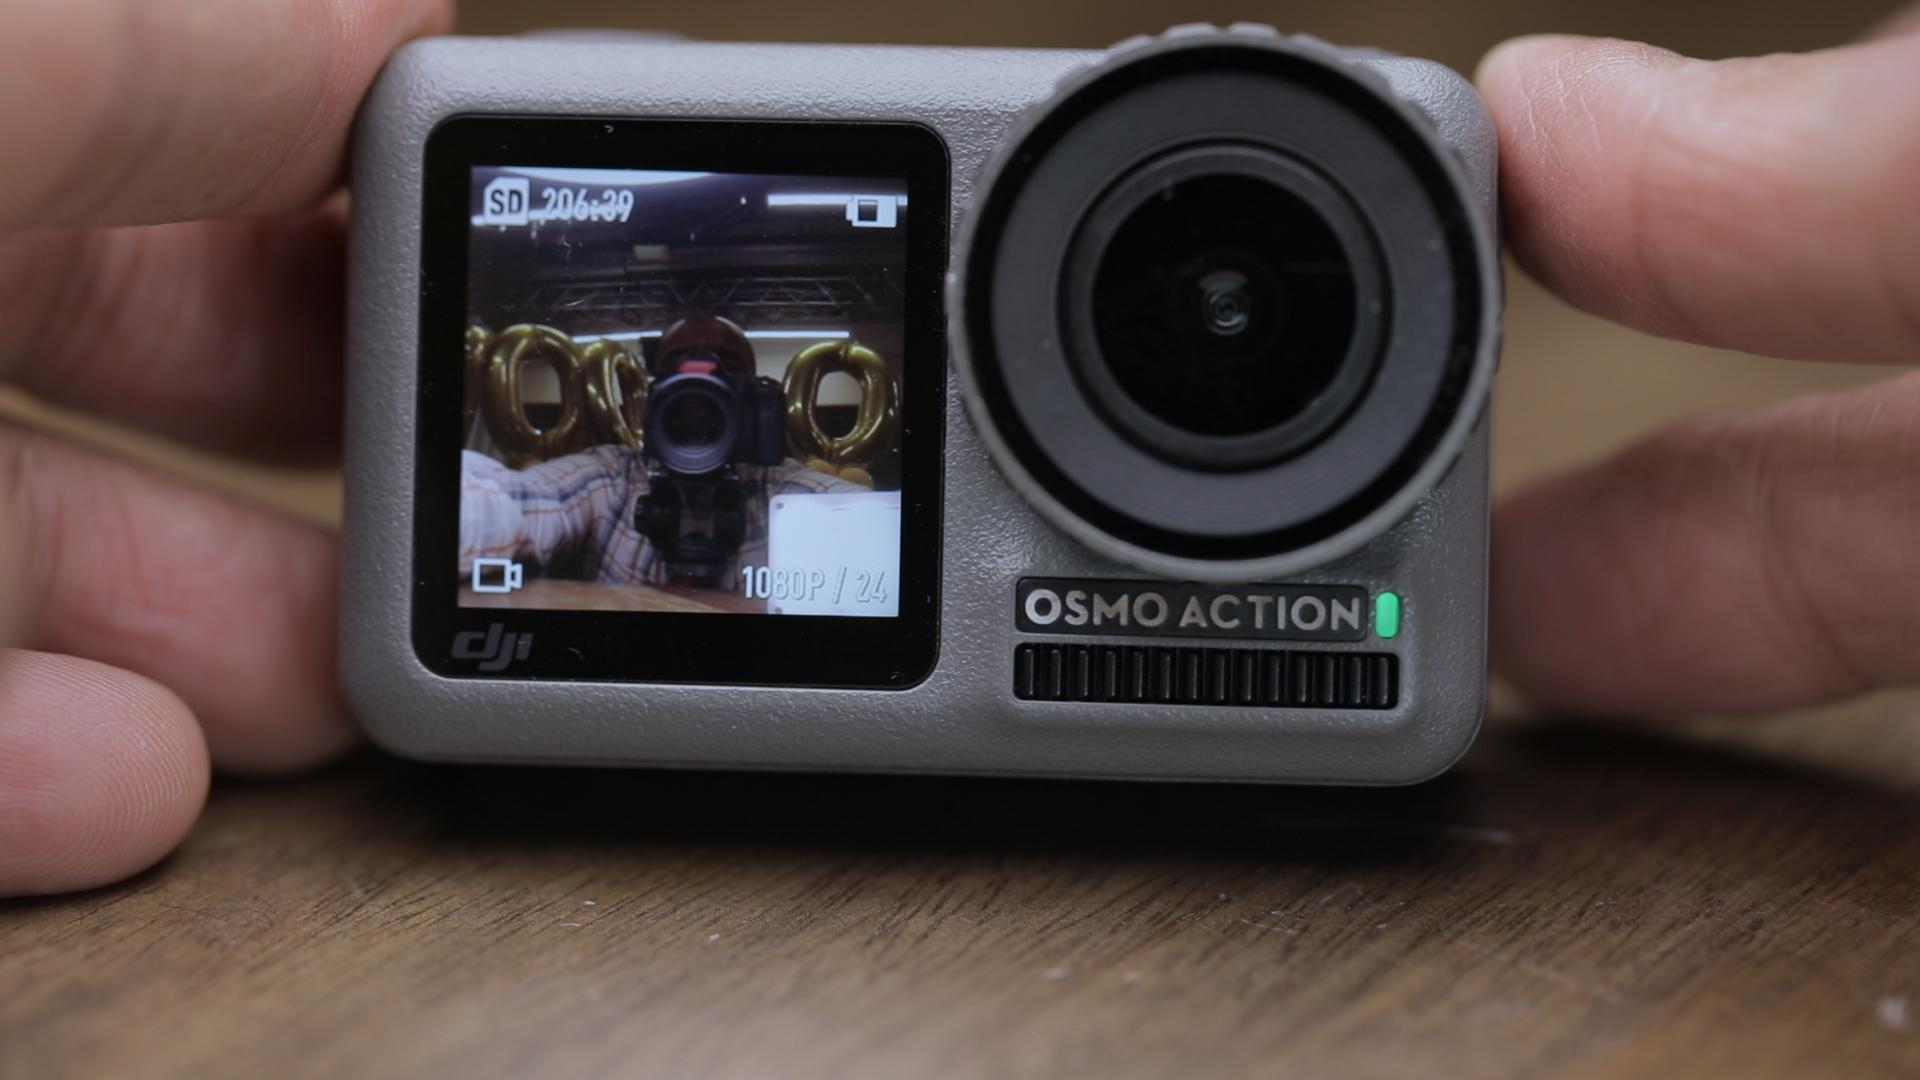 Is the new Osmo Action camera a GoPro Killer?